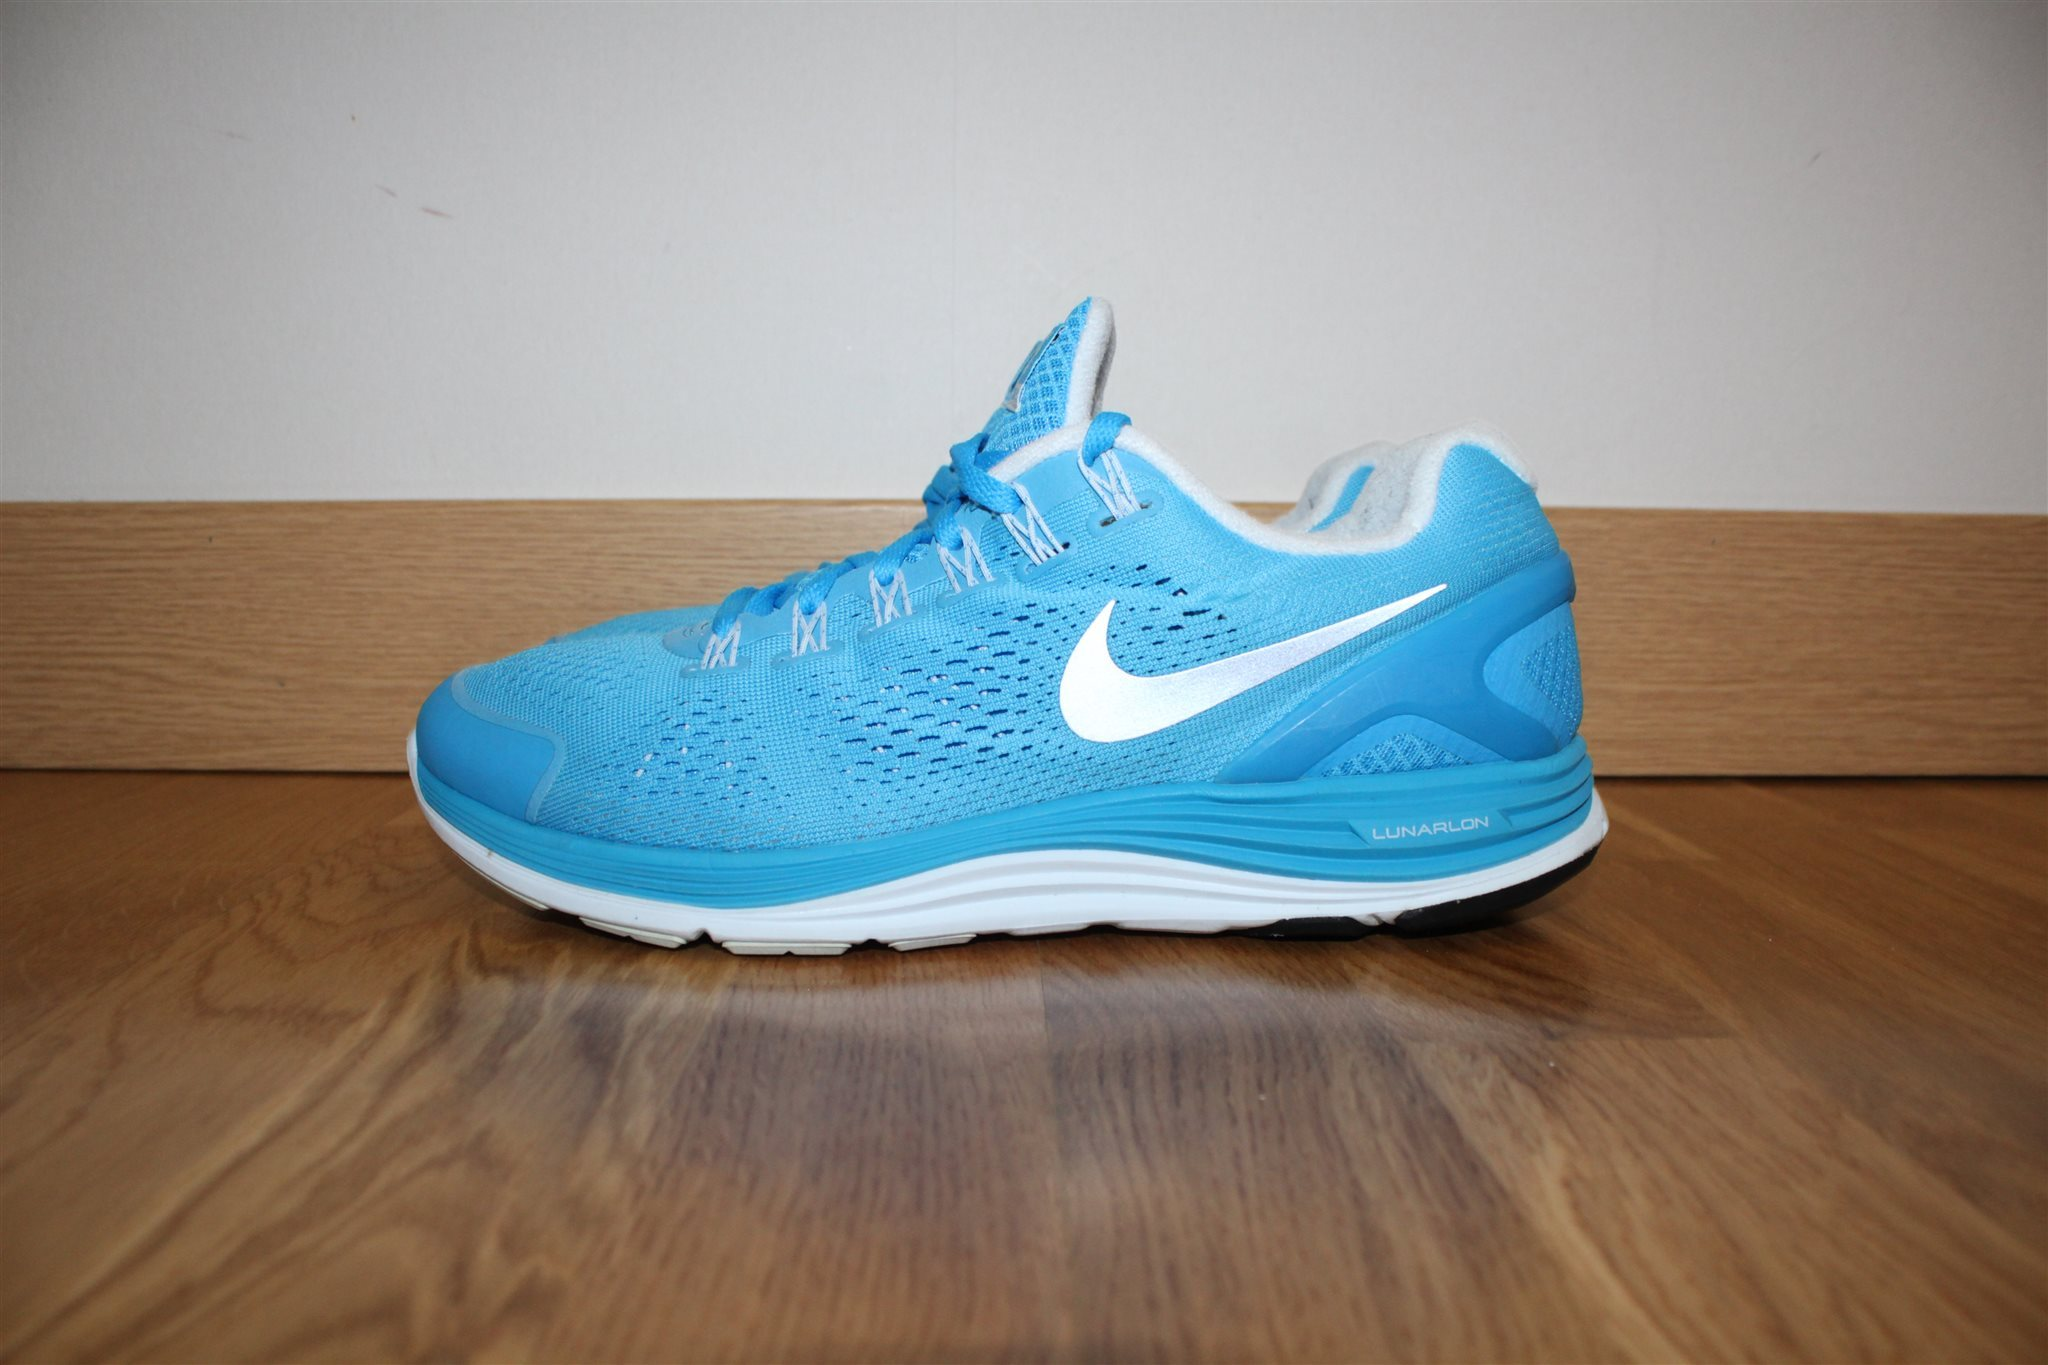 sports shoes f346e 61434 Nike Flex Supreme eb0d358 TR 3 training skor i stl 37.5. Fint skick!